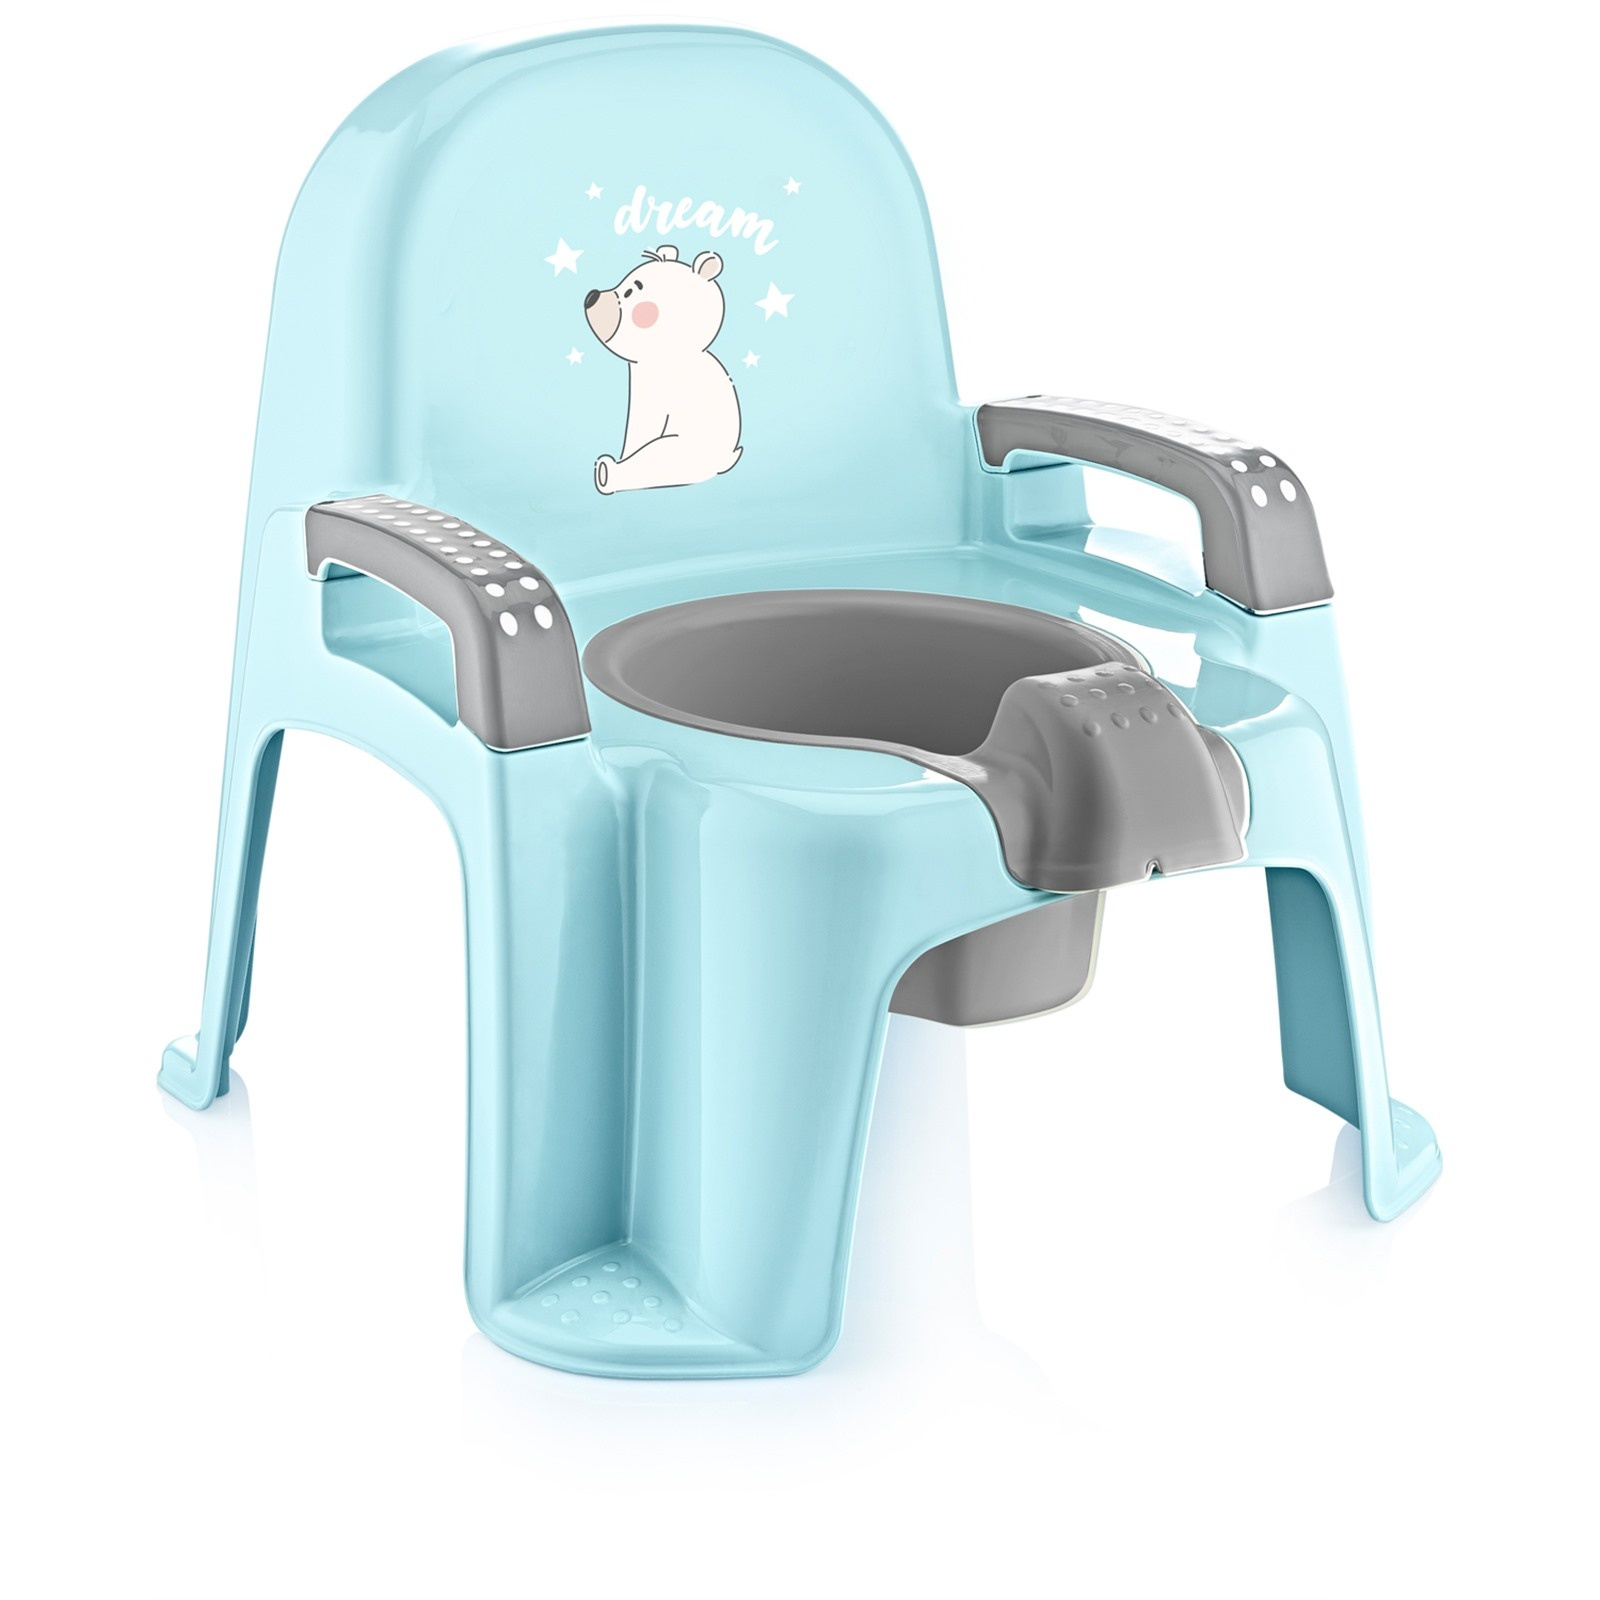 Ebebek Babyjem Flaky Training Practical Baby Seat Potty Children's Pot Baby Potty Toilet Urinal For Boys Kids Toilet Seat